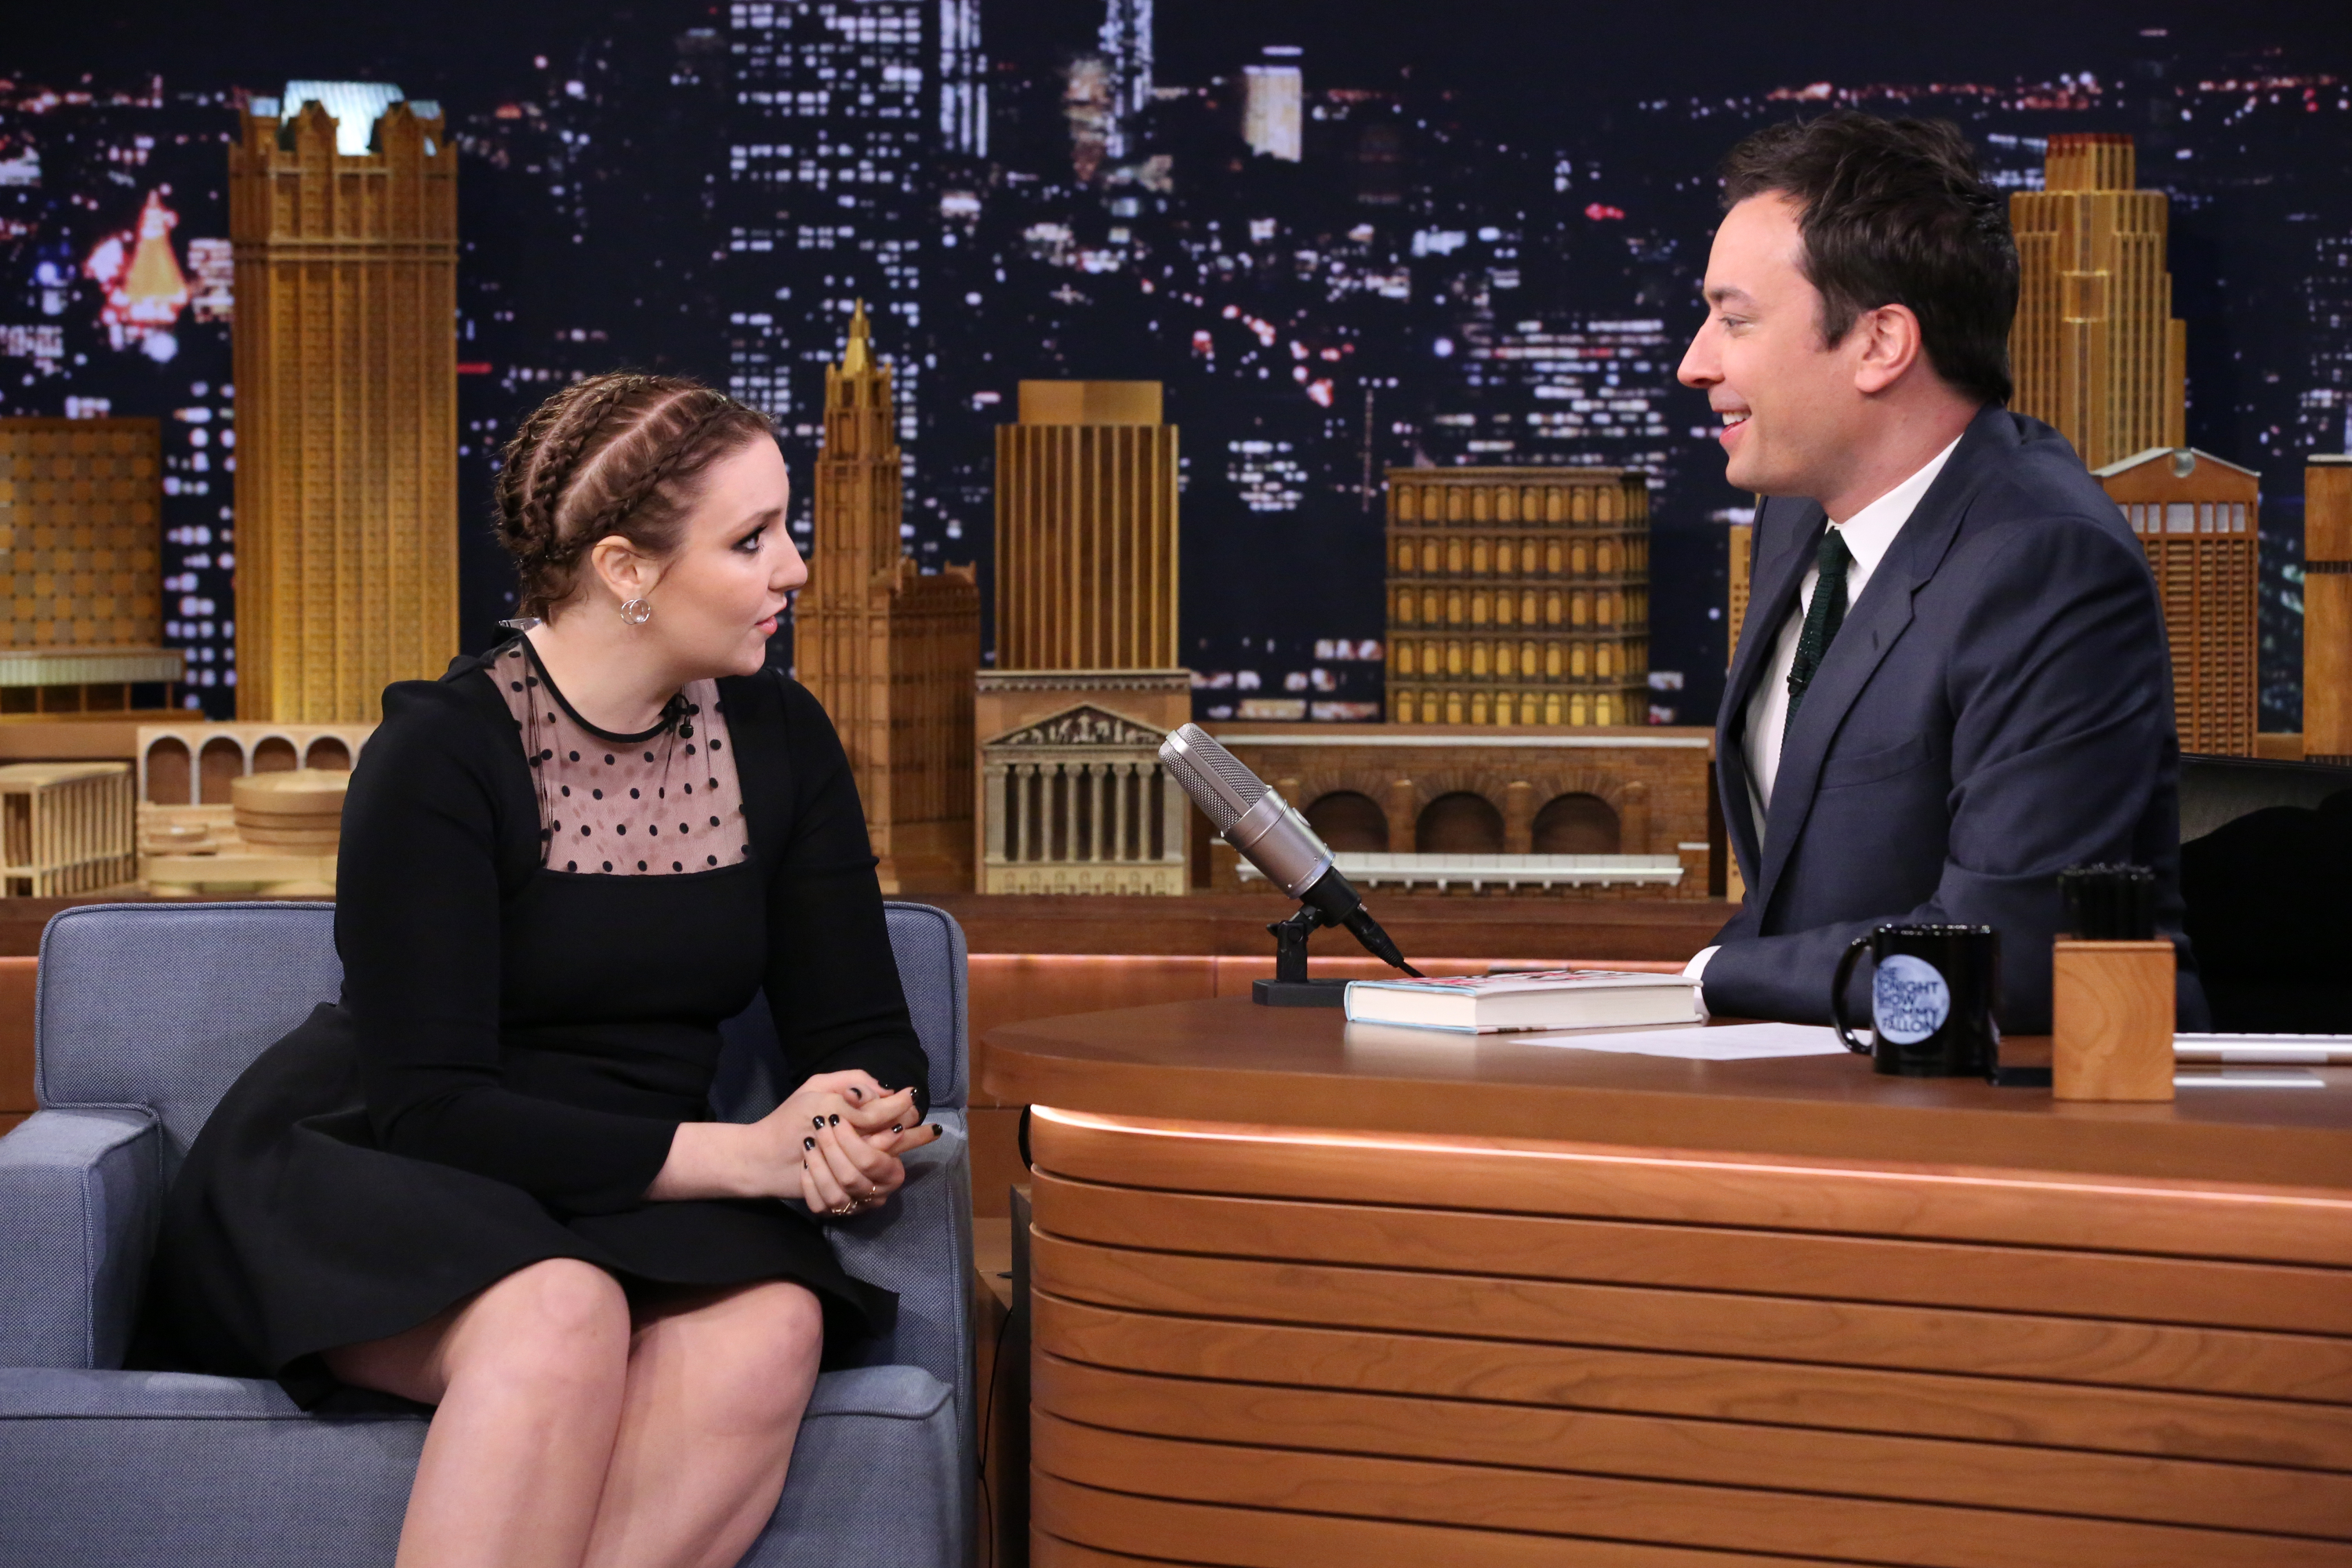 Lena Dunham Visits  The Tonight Show Starring Jimmy Fallon  in New York City on Jan. 8, 2015.